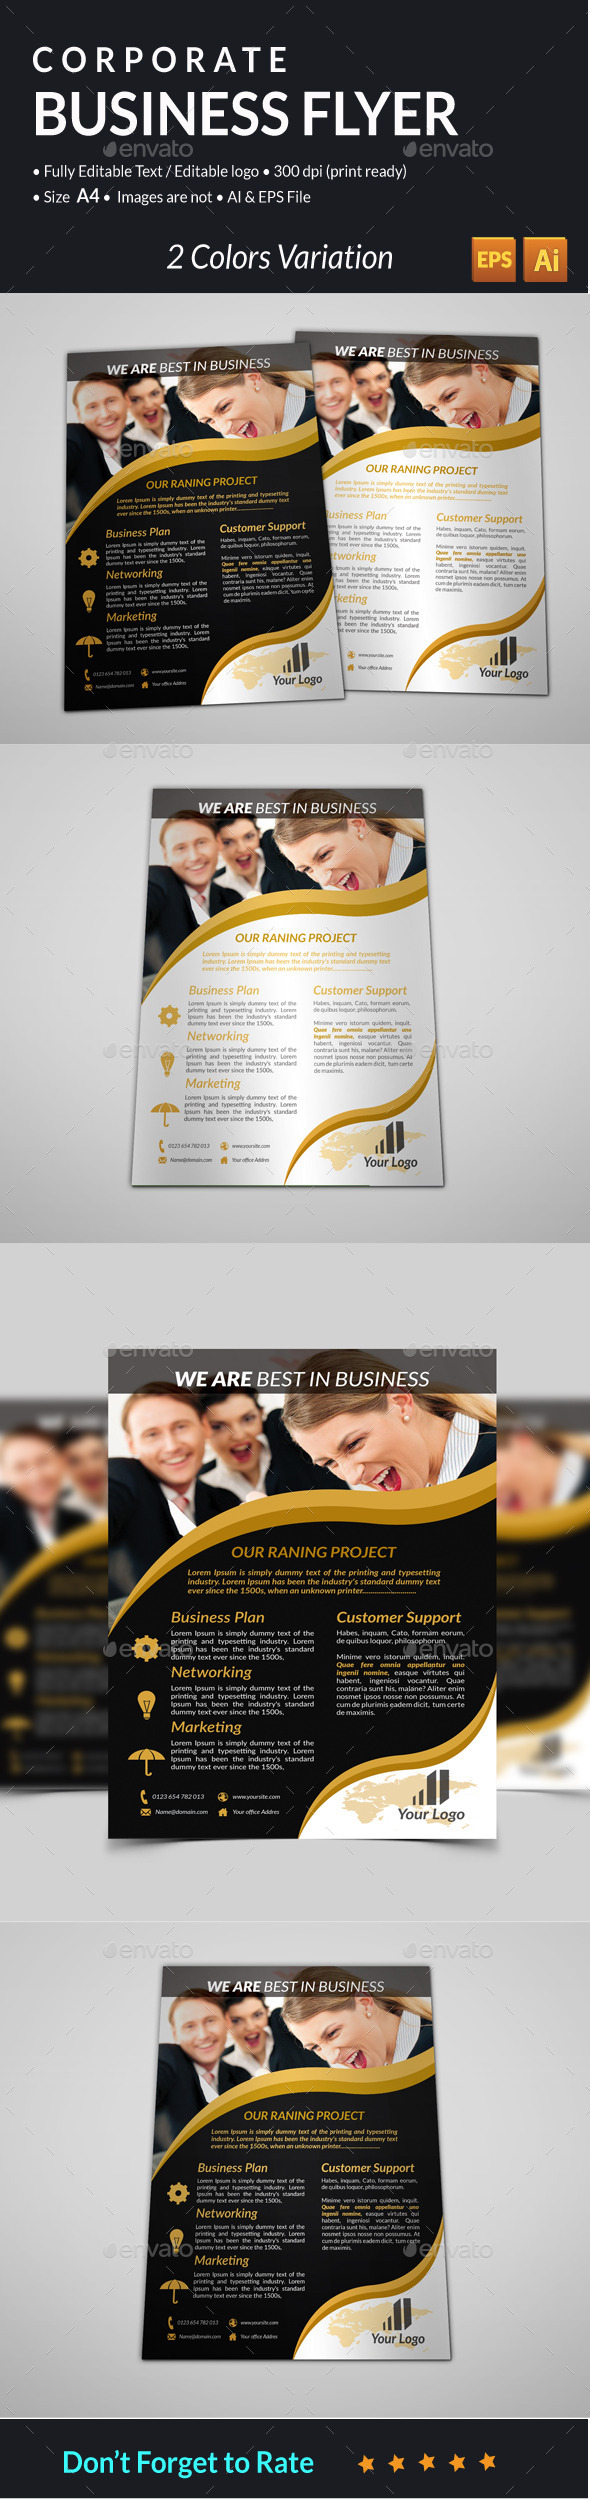 GraphicRiver Corporate Business Flyer 11415229